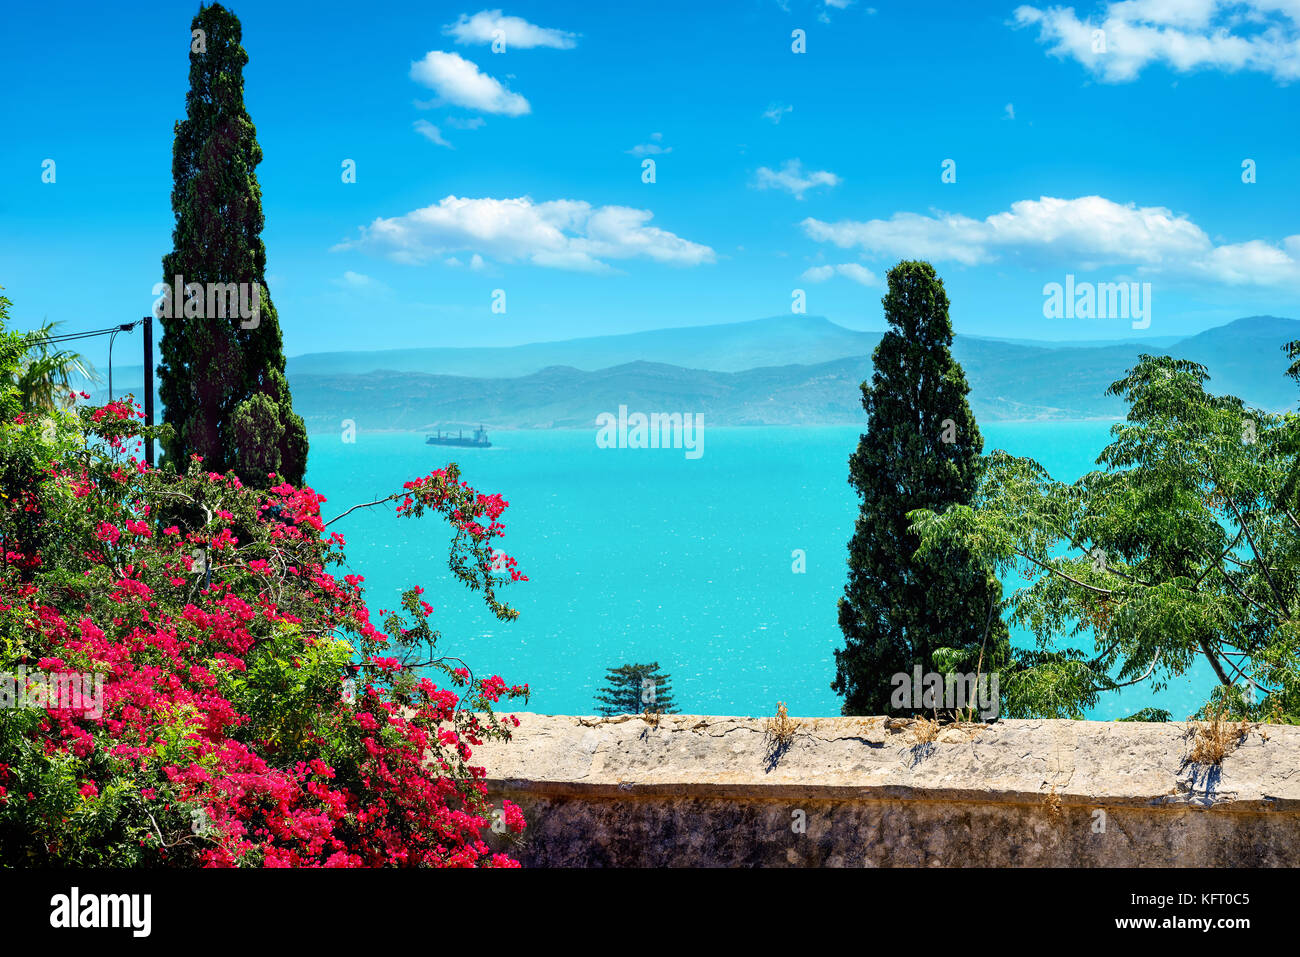 Beautiful view from Carthage garden of Tunis bay. Tunis, Tunisia, North Africa - Stock Image